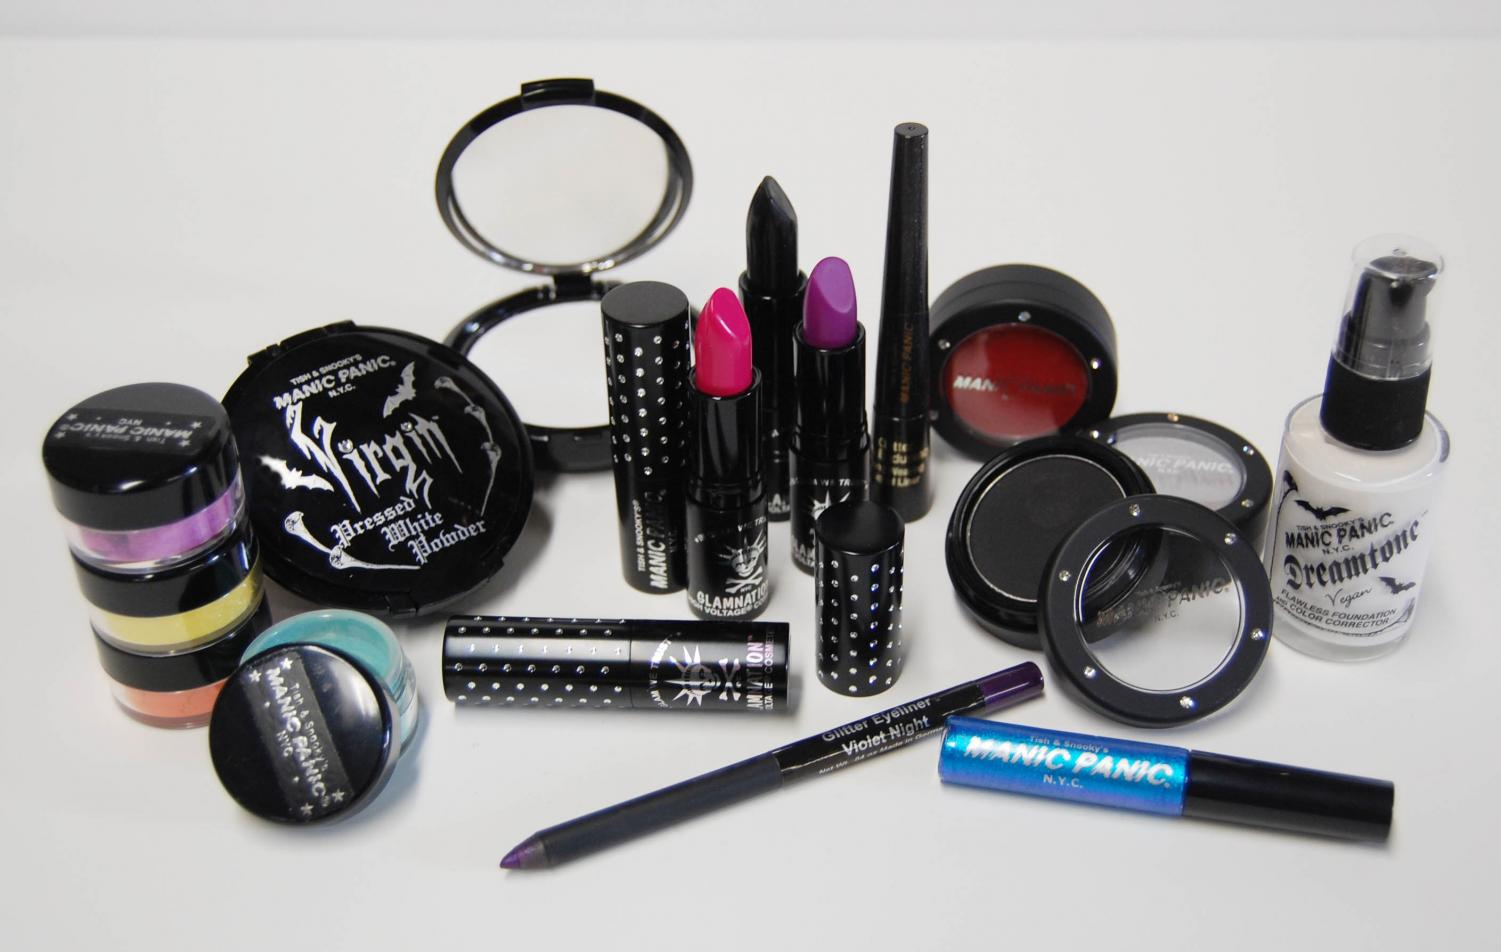 Awaiting use by environmentally conscious consumers, a variety of vegan cosmetics are shown. By using vegan and cruelty free products, makeup users can have piece of mind in knowing that there products have not been tested on animals and are environmentally safe.